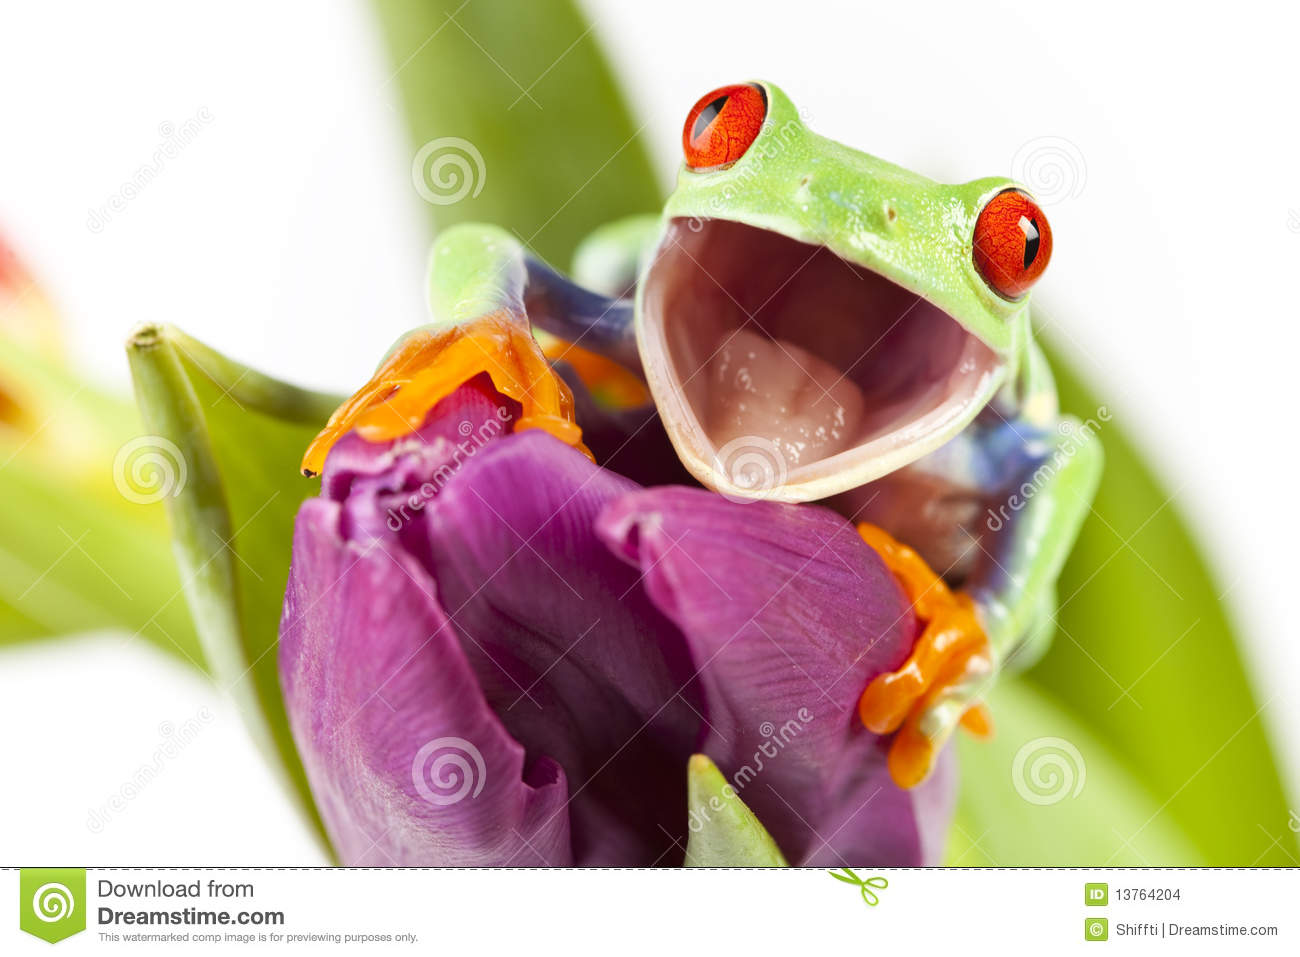 Frog On Flower Stock Images - Image: 13764204